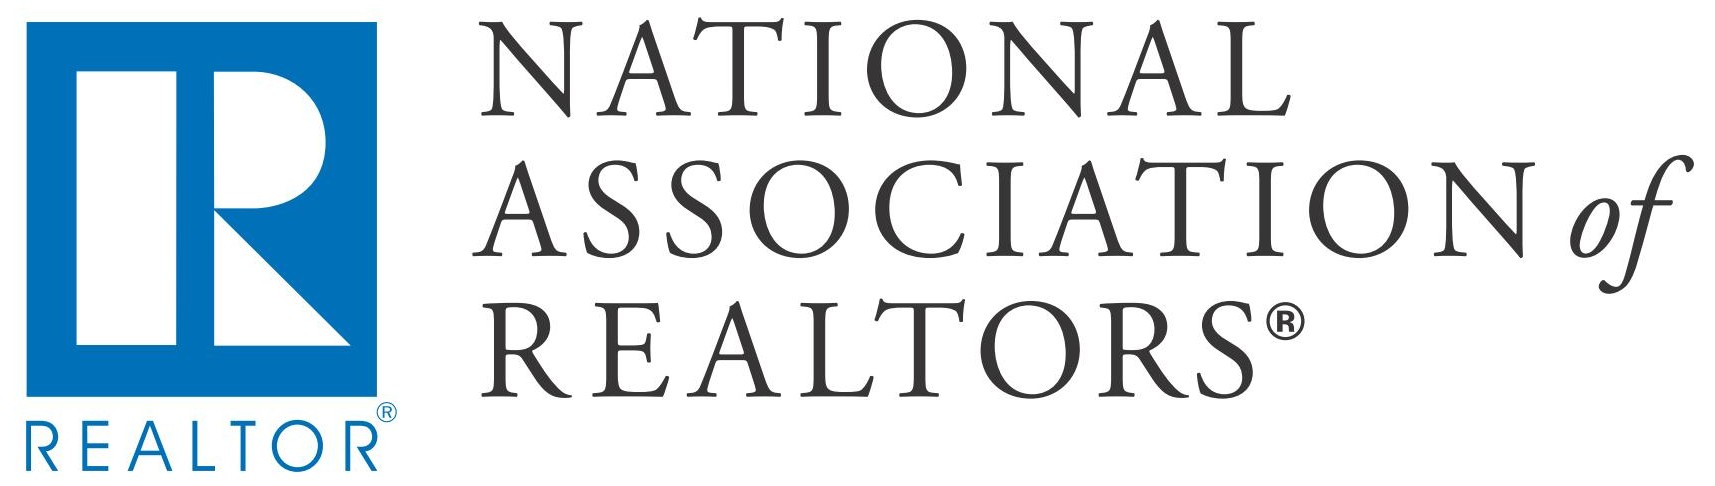 National_Association_of_Realtors_Logo.jpg